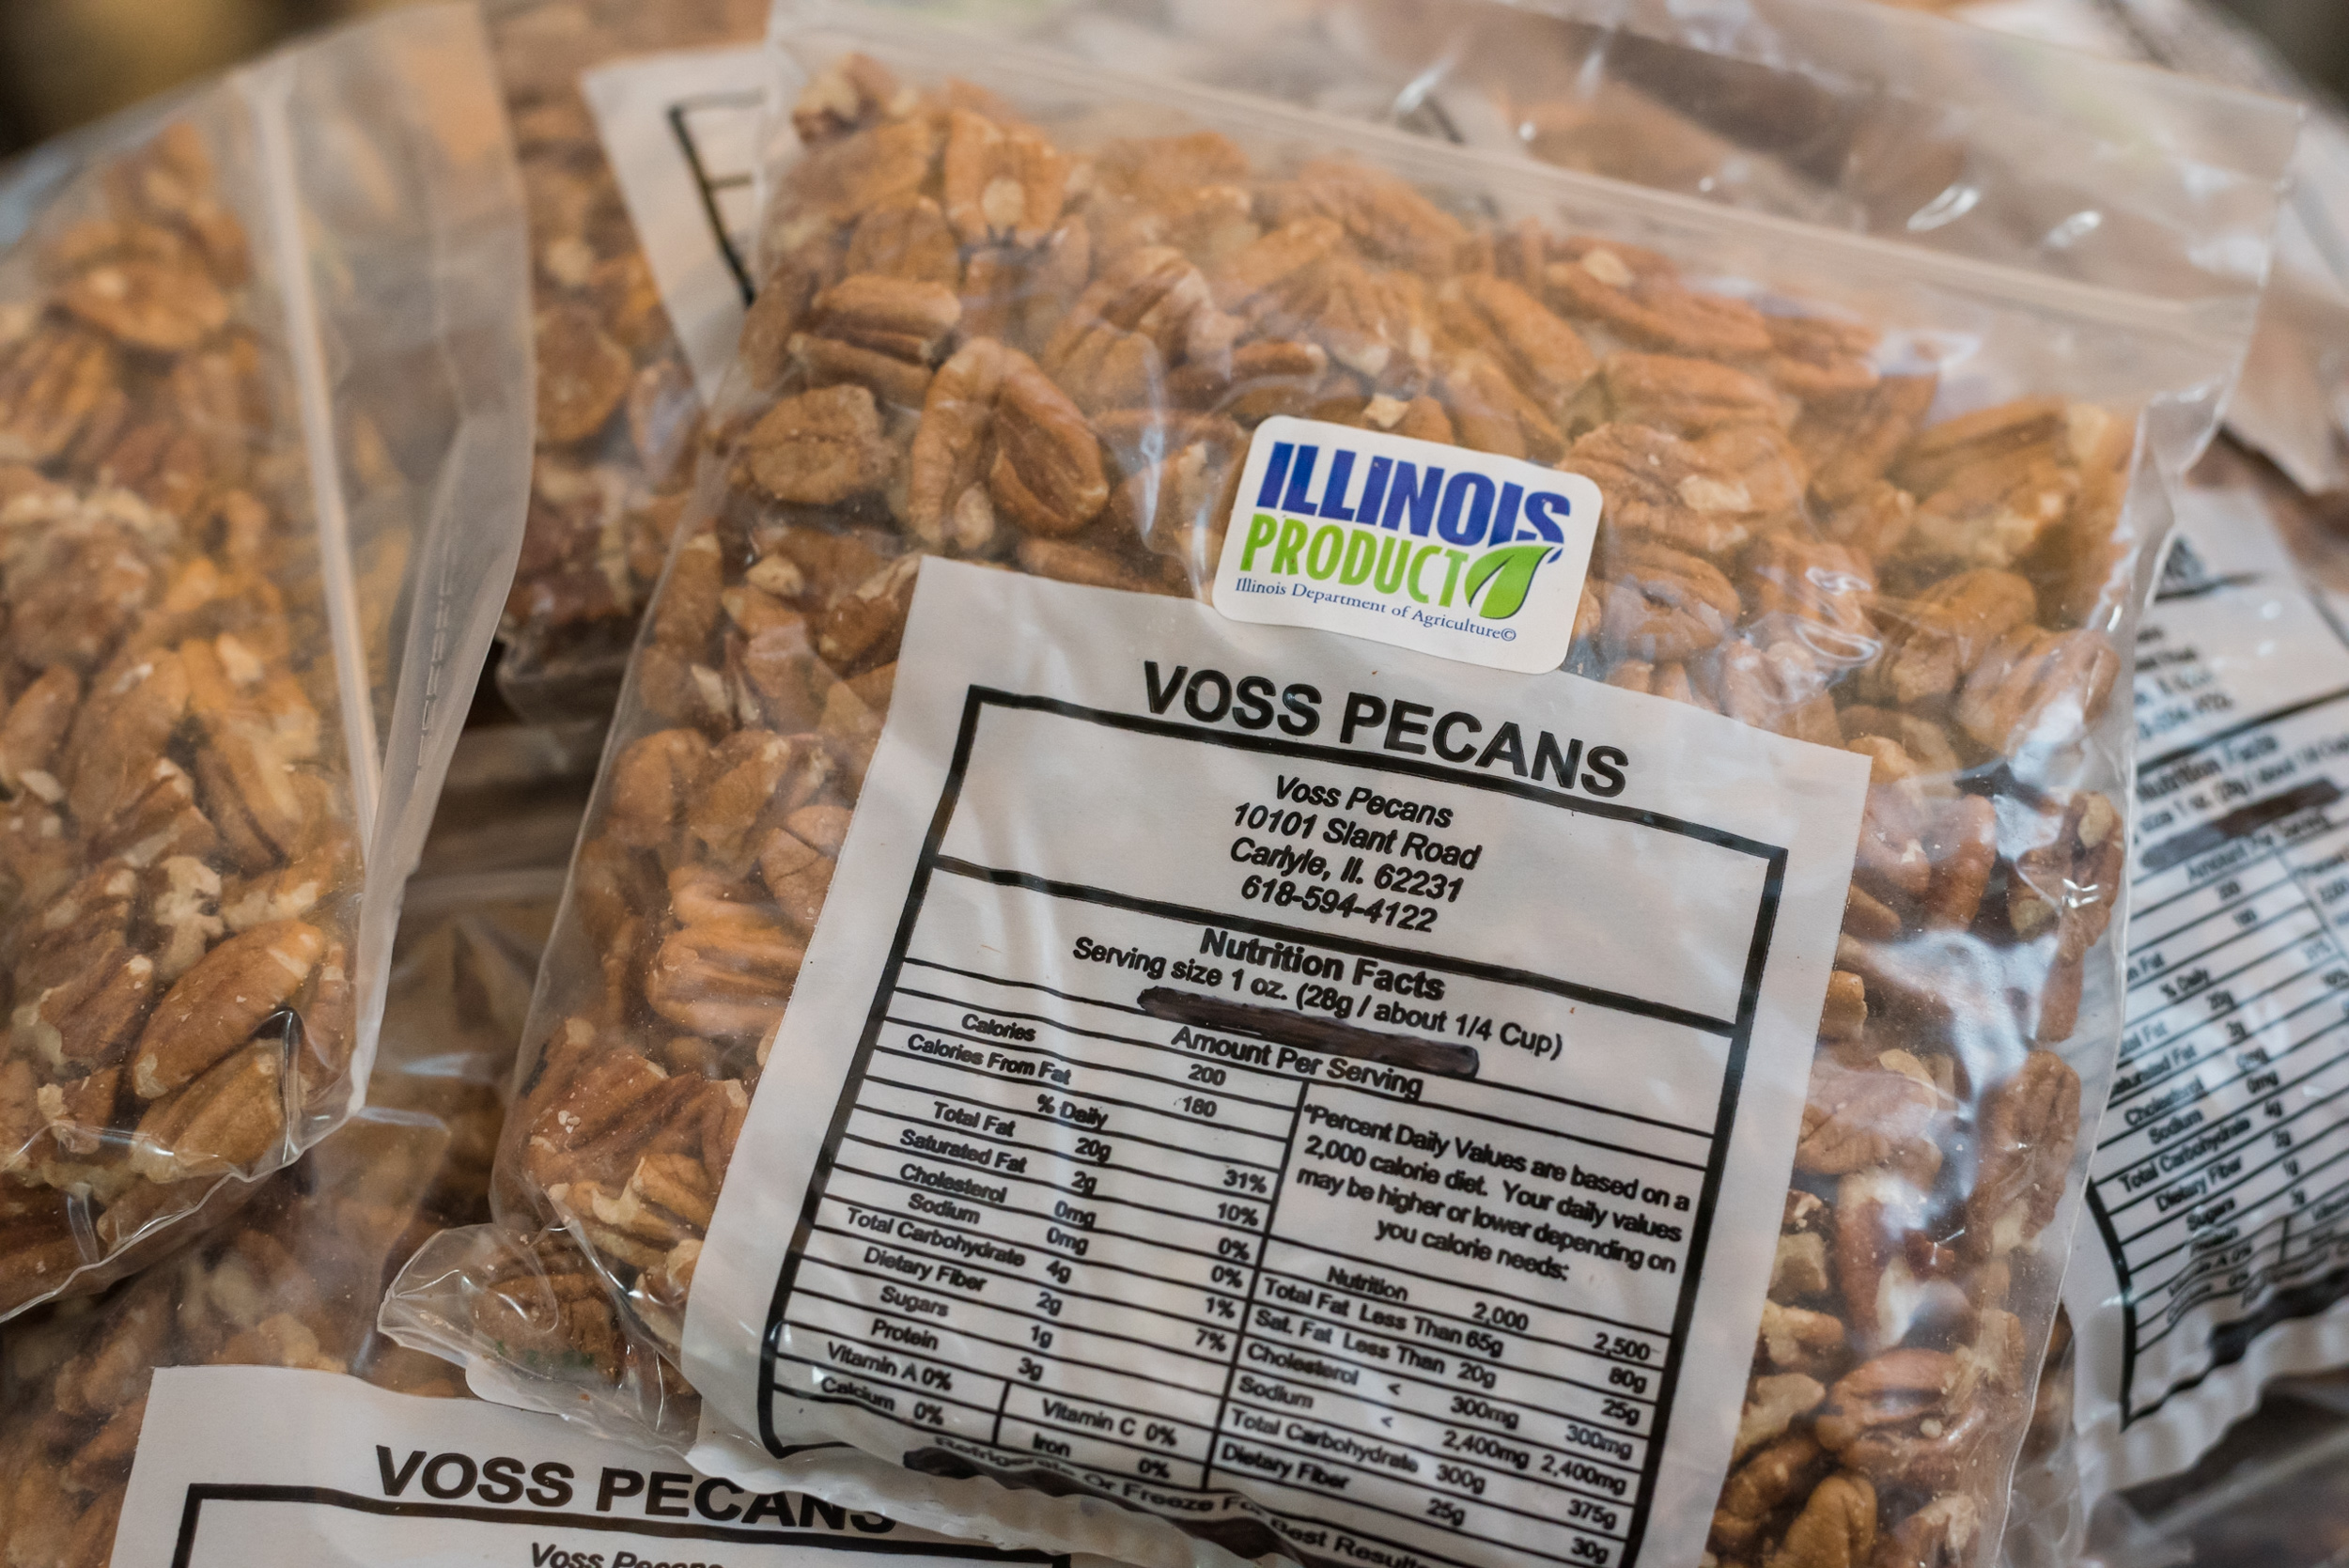 voss pecans packaged in plastic baggies with the logo on it